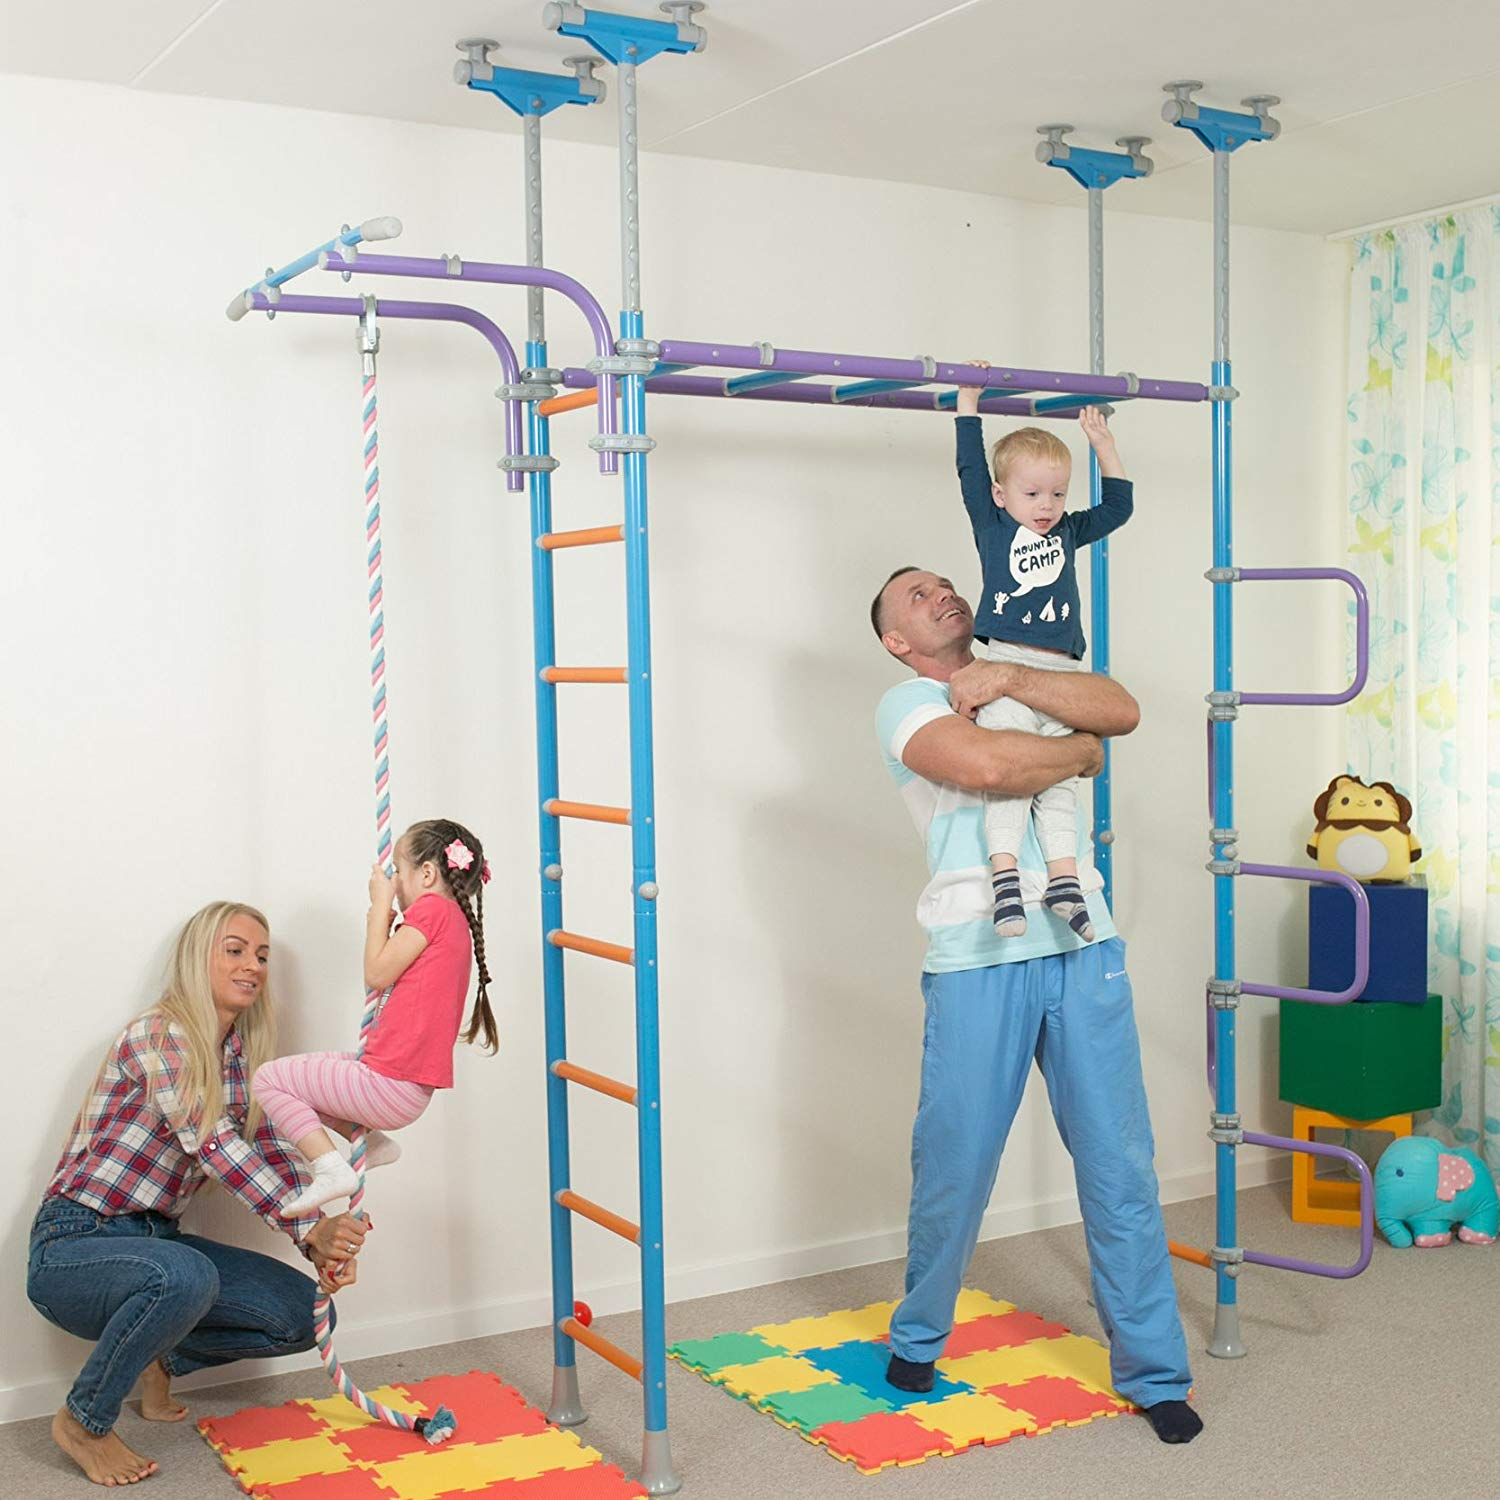 WALLBARZ NETS INDOOR PLAYGROUND